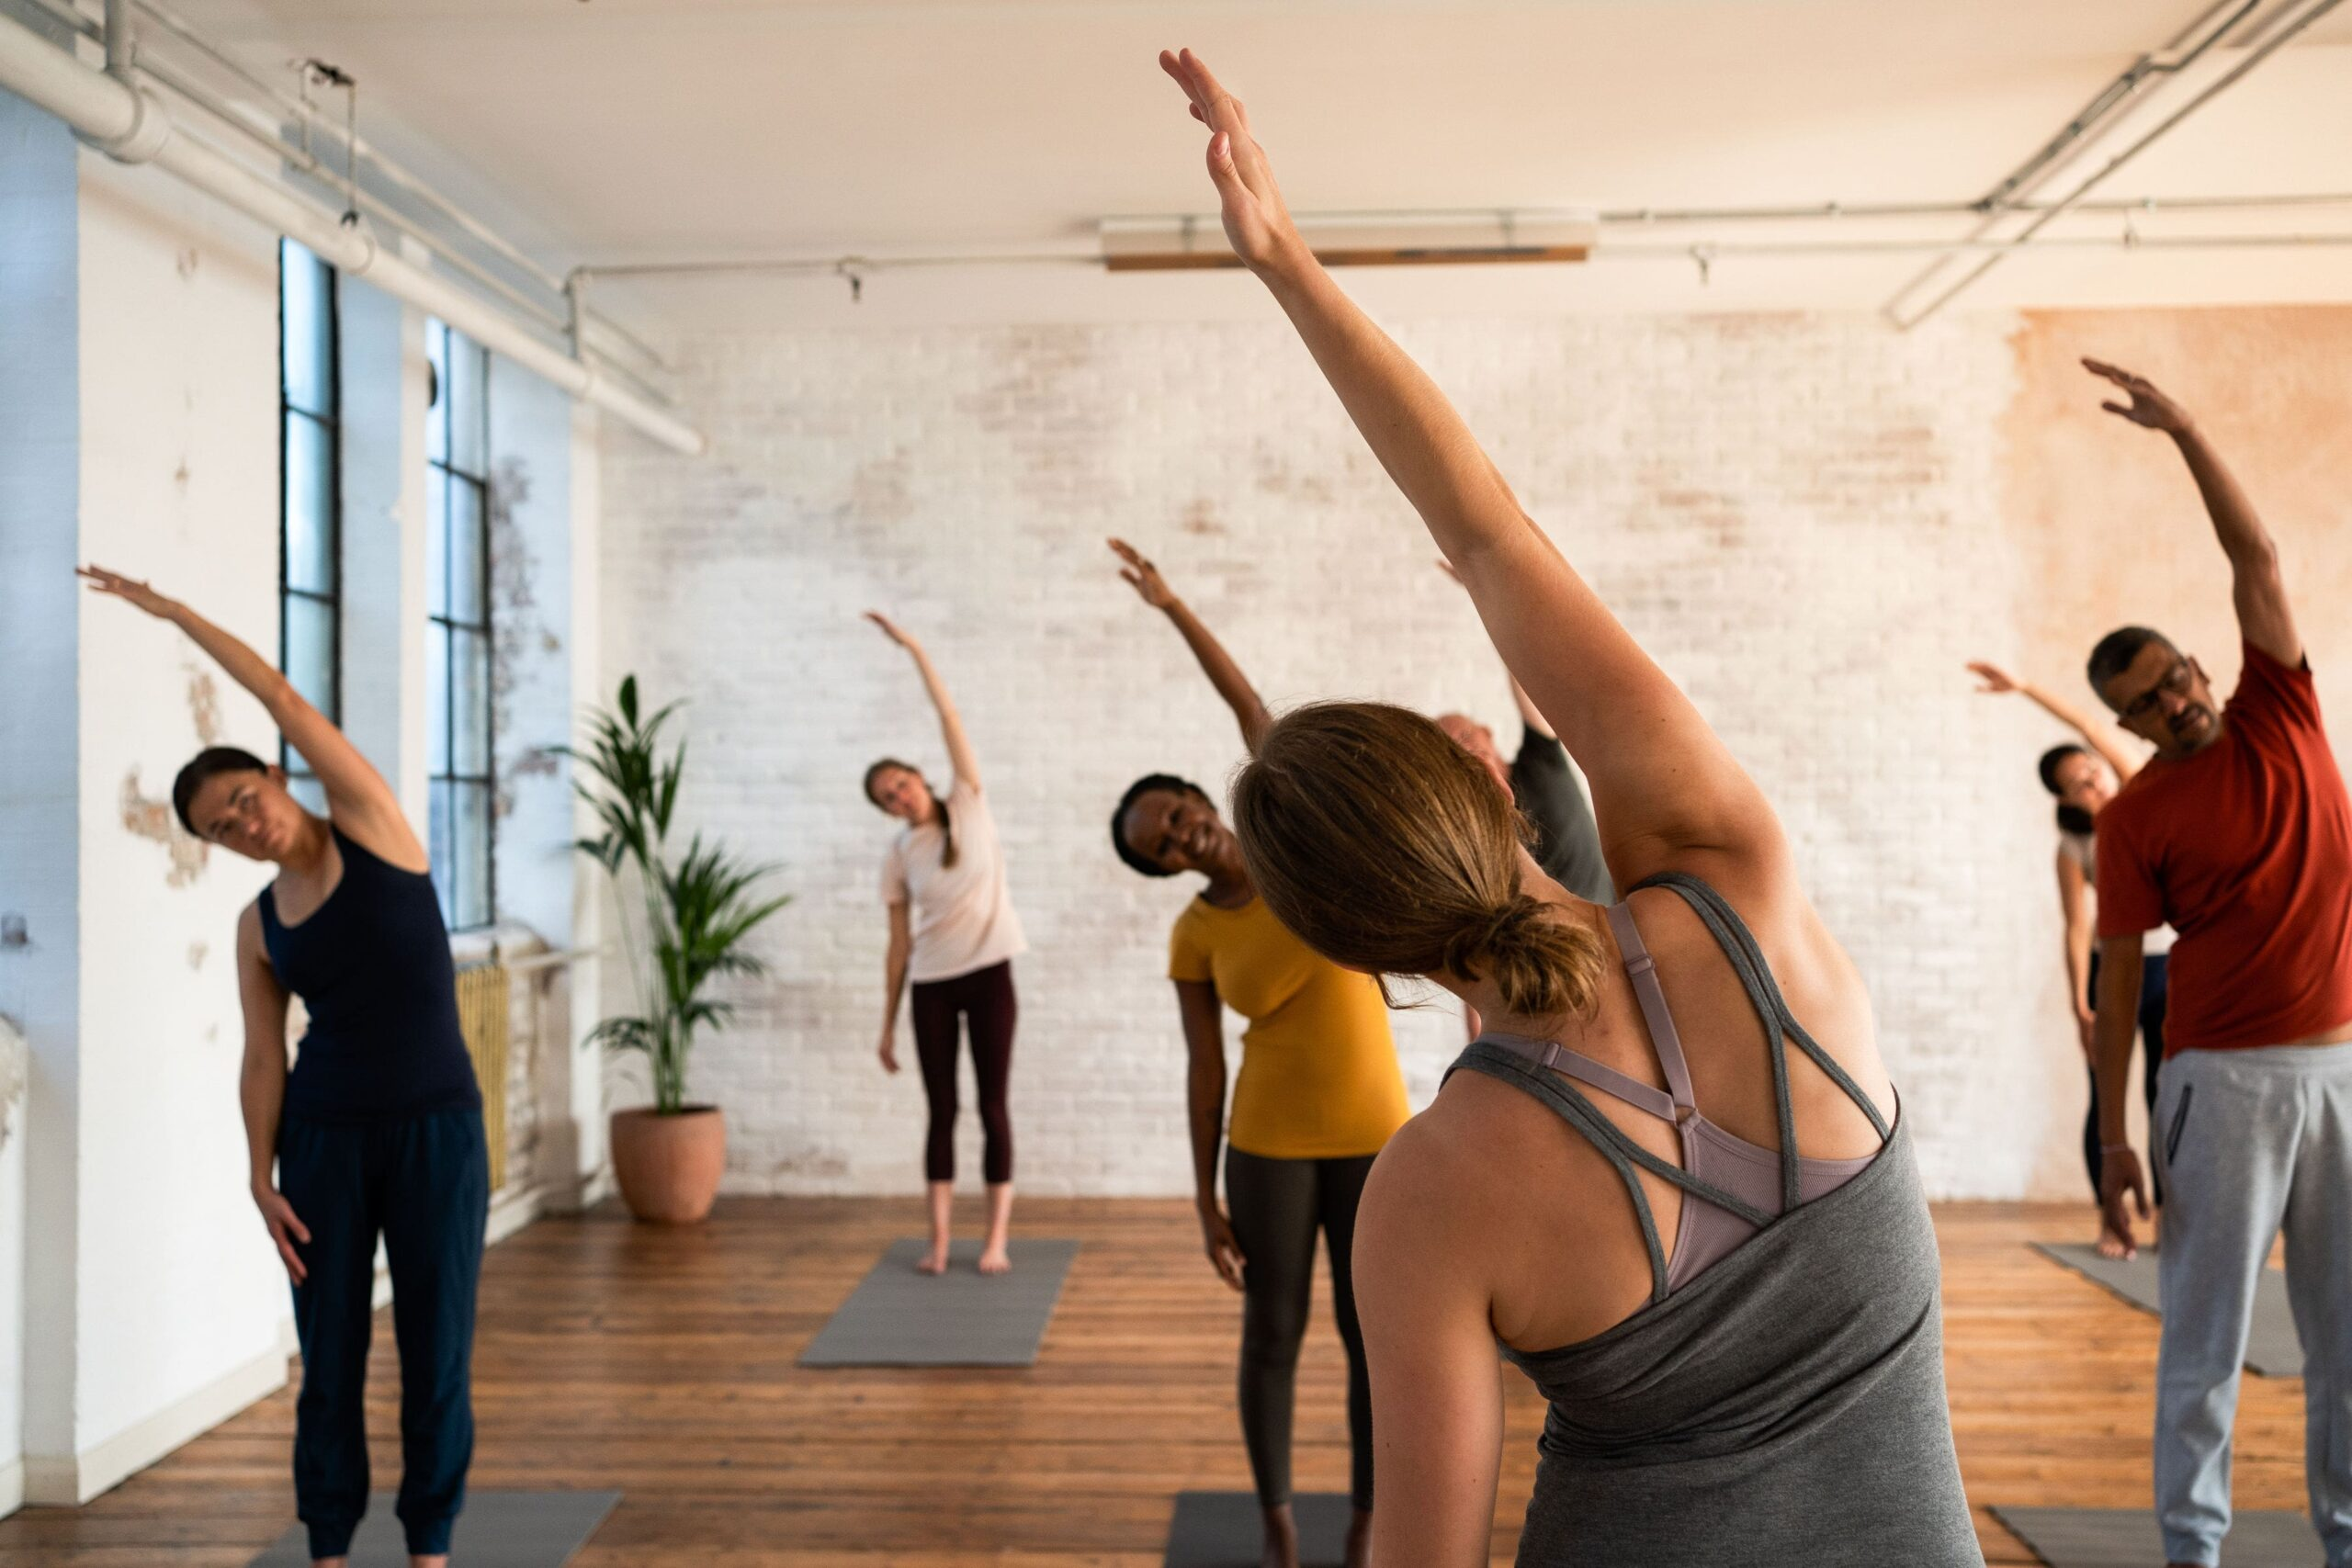 5 ways Pilates can improve your life (other than core strength)